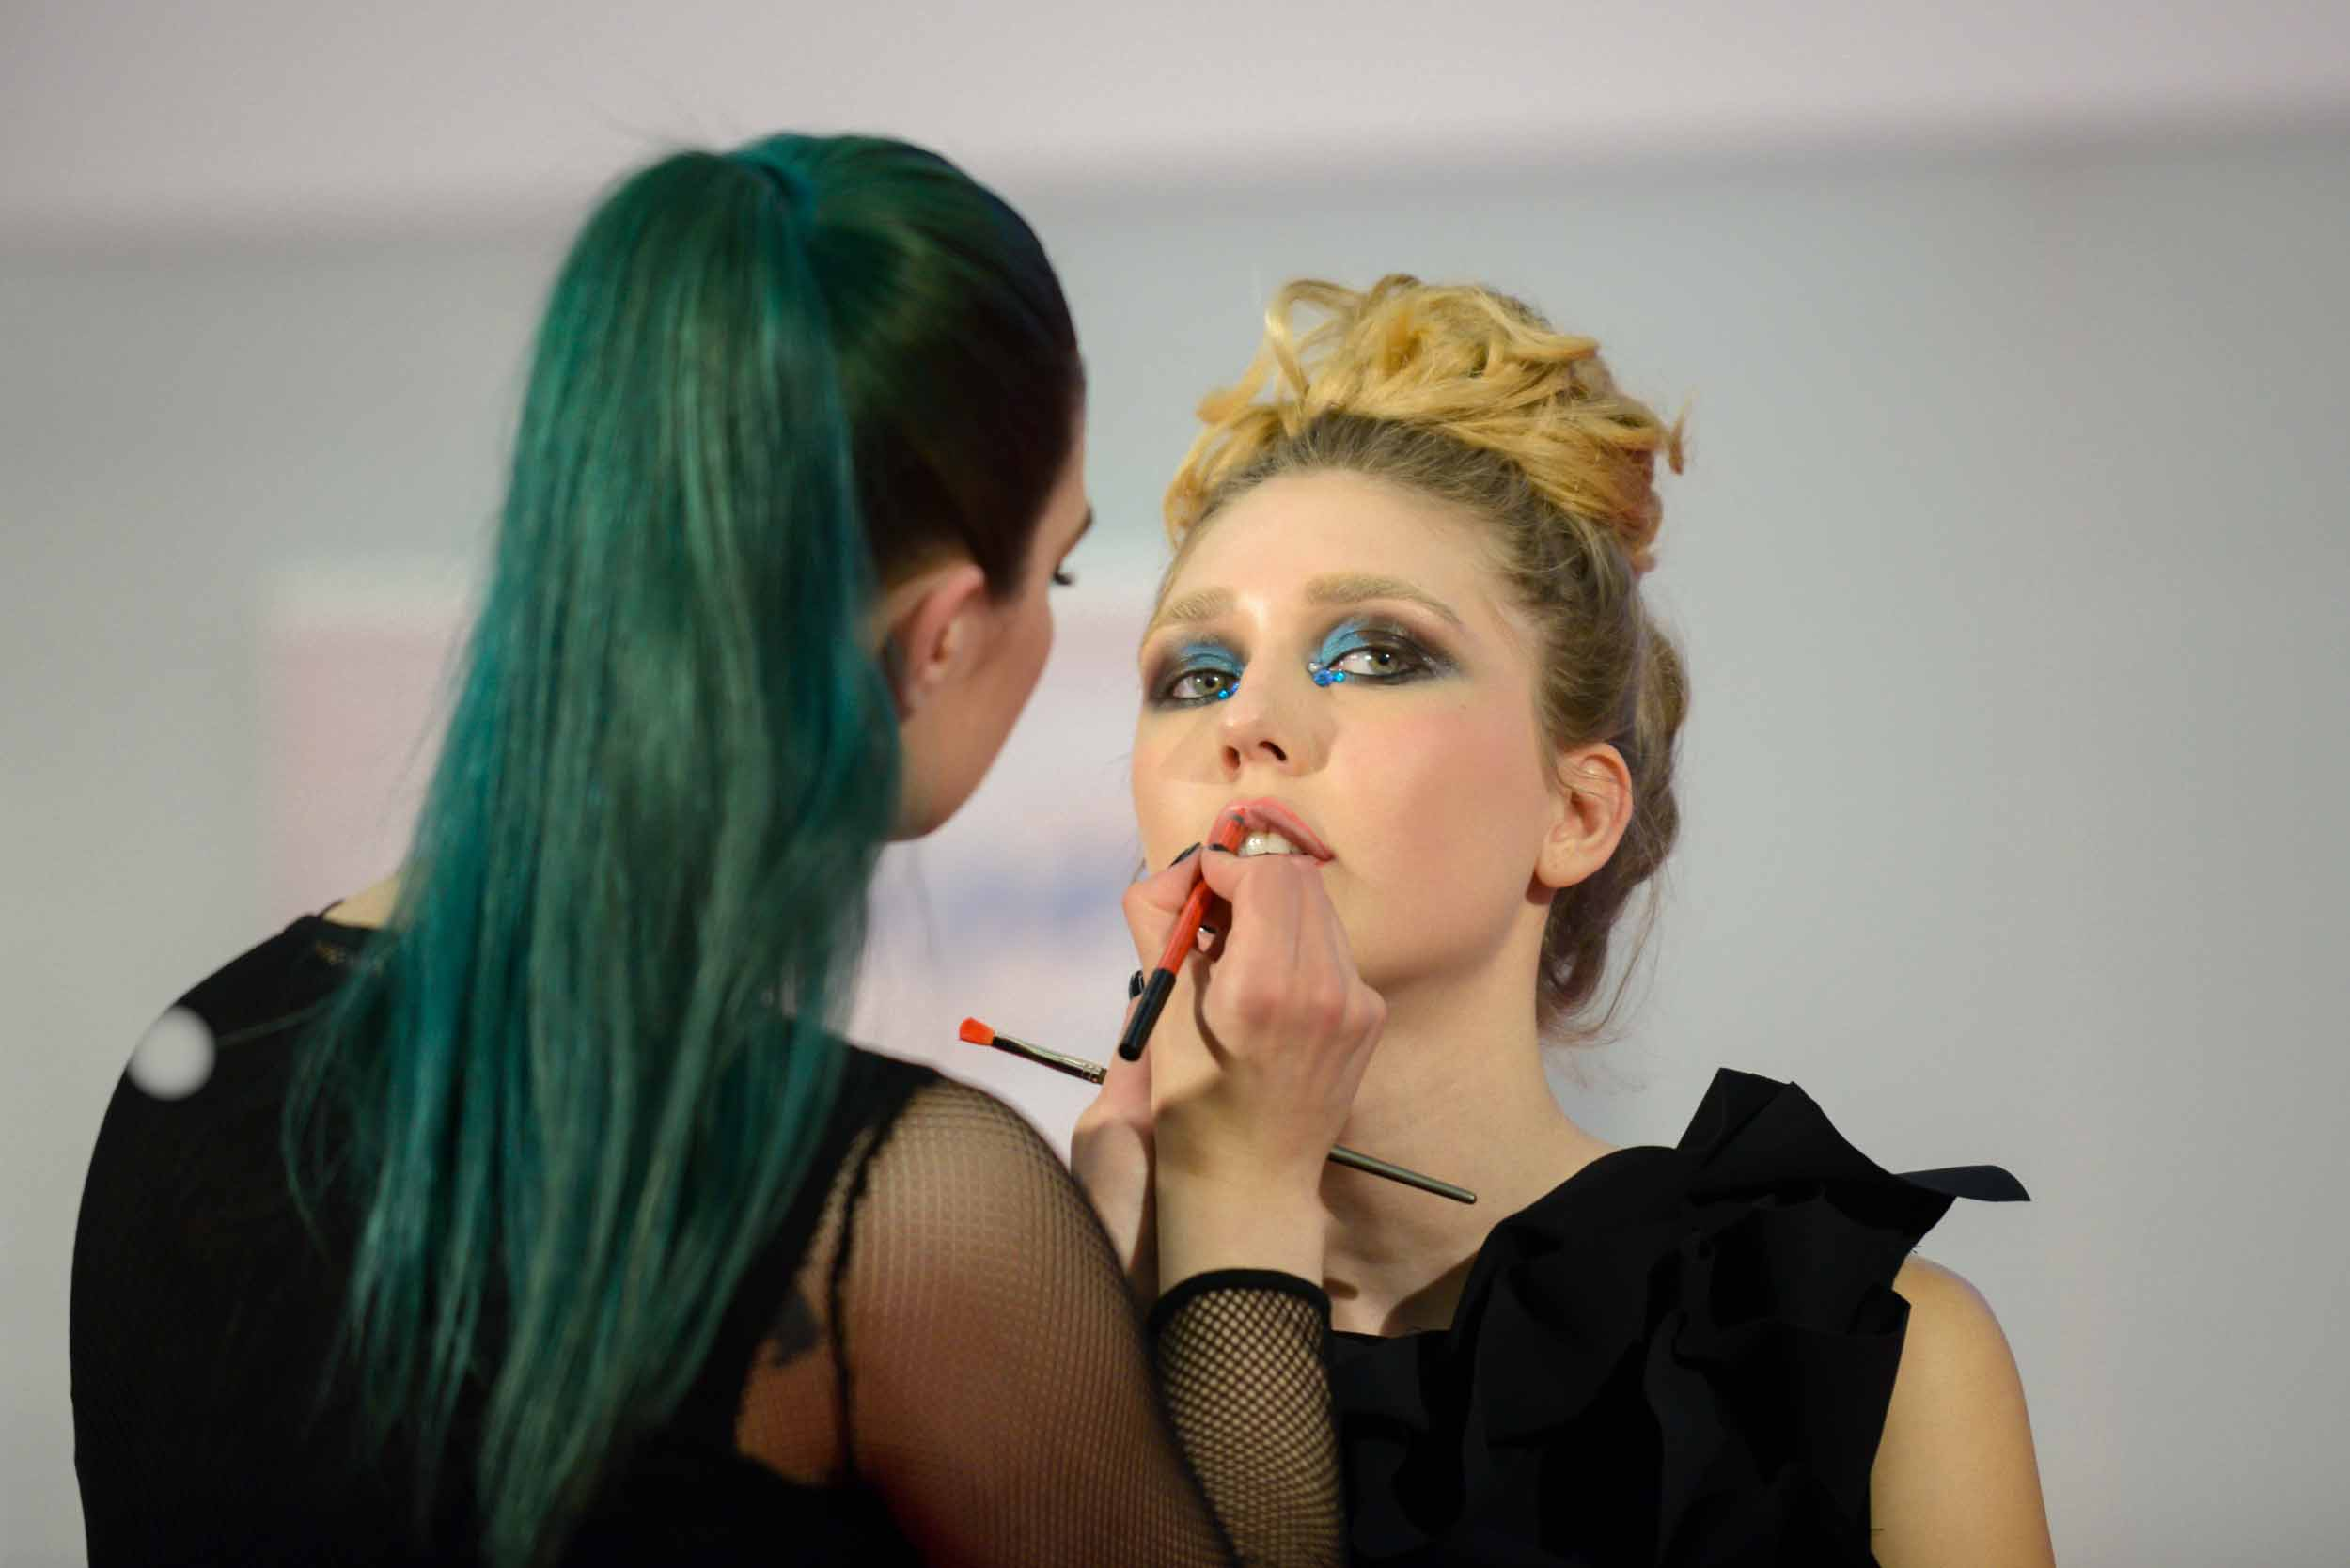 BEAUTY & HAIR EXPO ZAGREB 2019: Prestižan make up look aktualne Kraljice Hrvatske by Callegarijeva Make up Artistica Tena Bašić